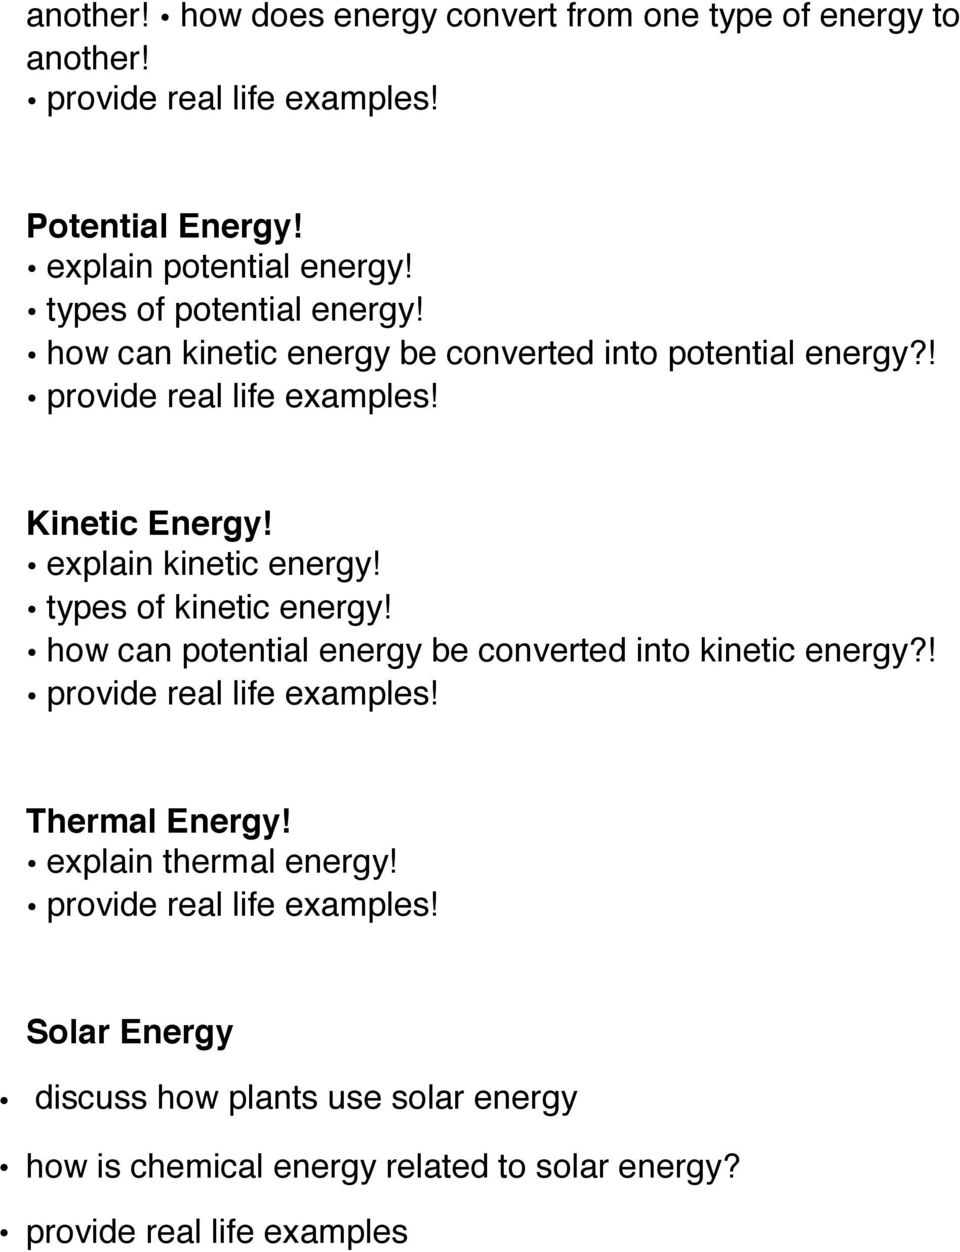 explain kinetic energy! types of kinetic energy! how can potential energy be converted into kinetic energy?! provide real life examples!